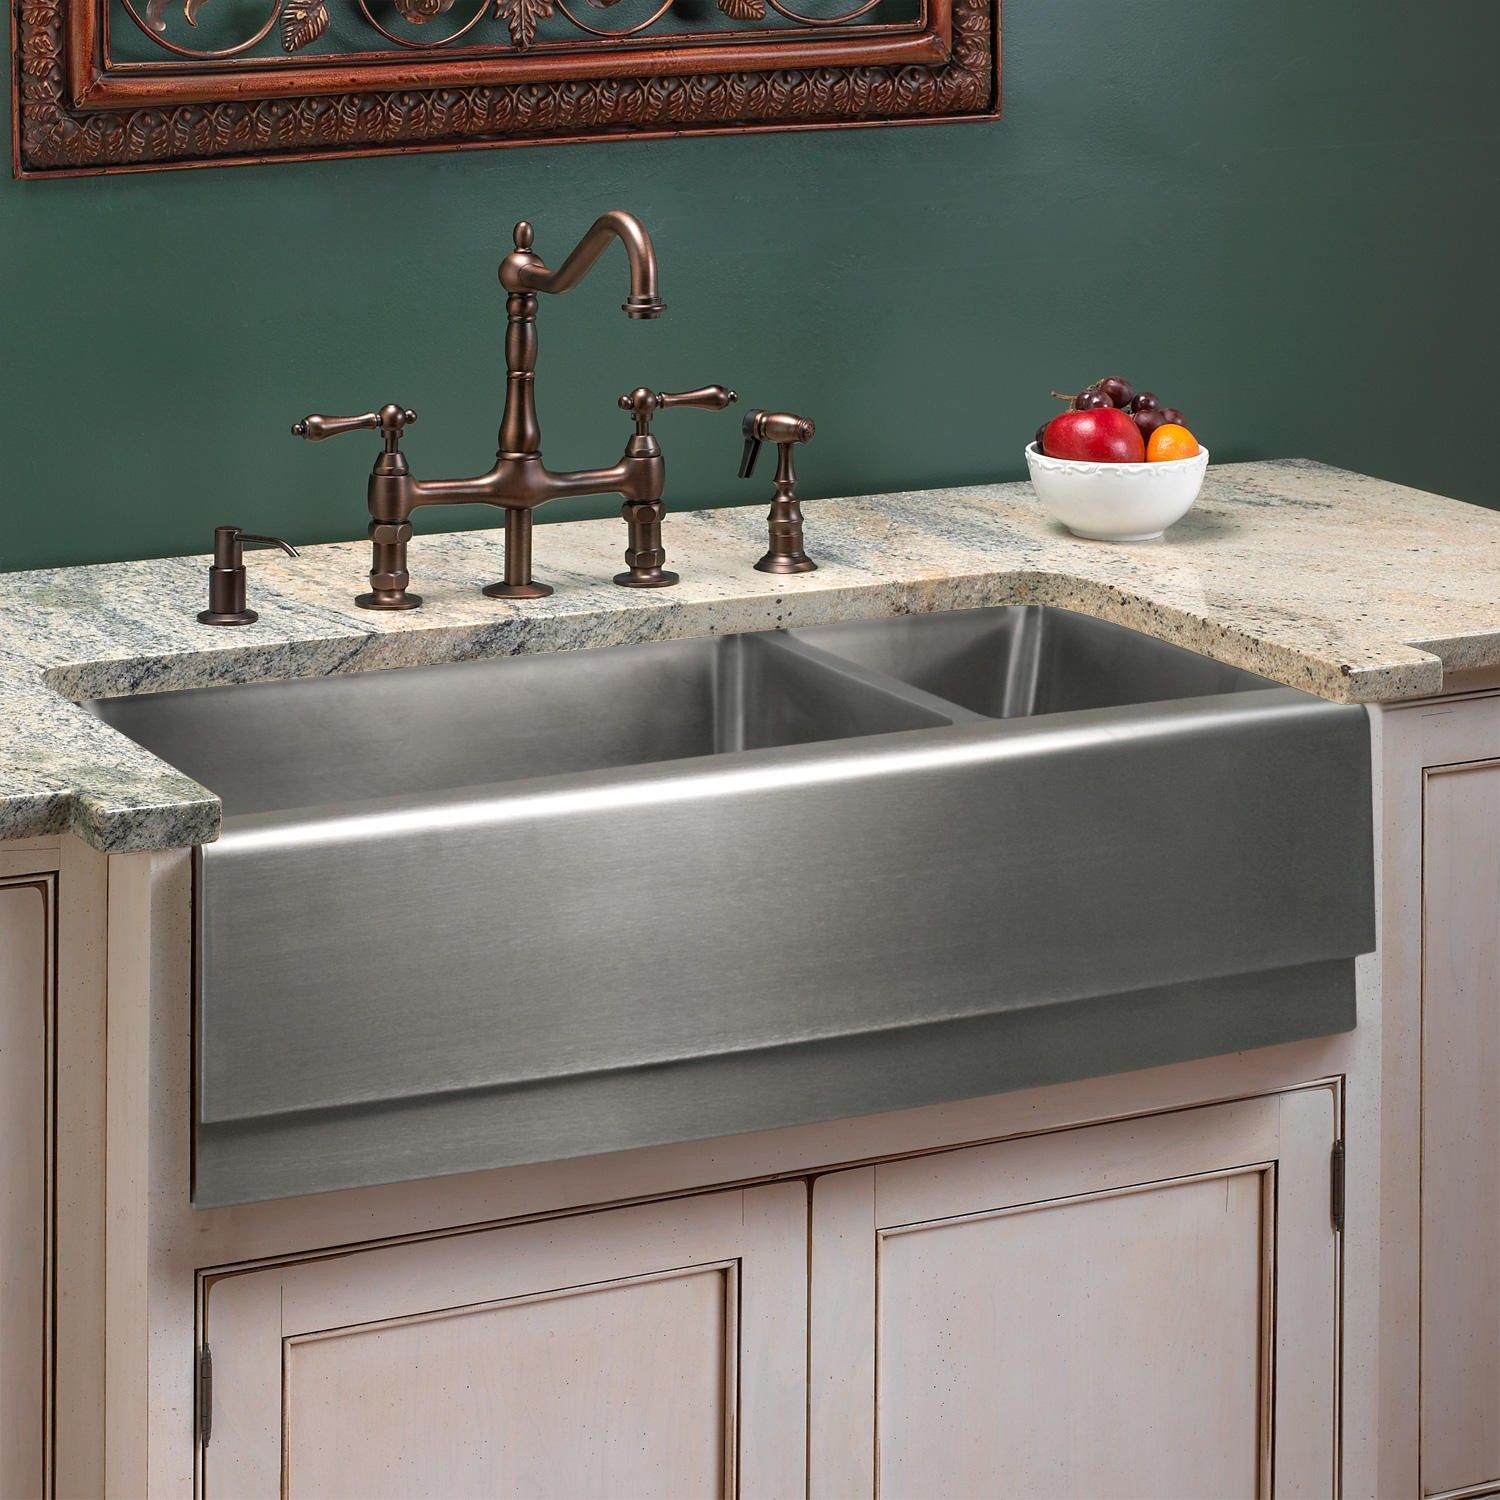 42+ Stainless double farmhouse sink inspiration